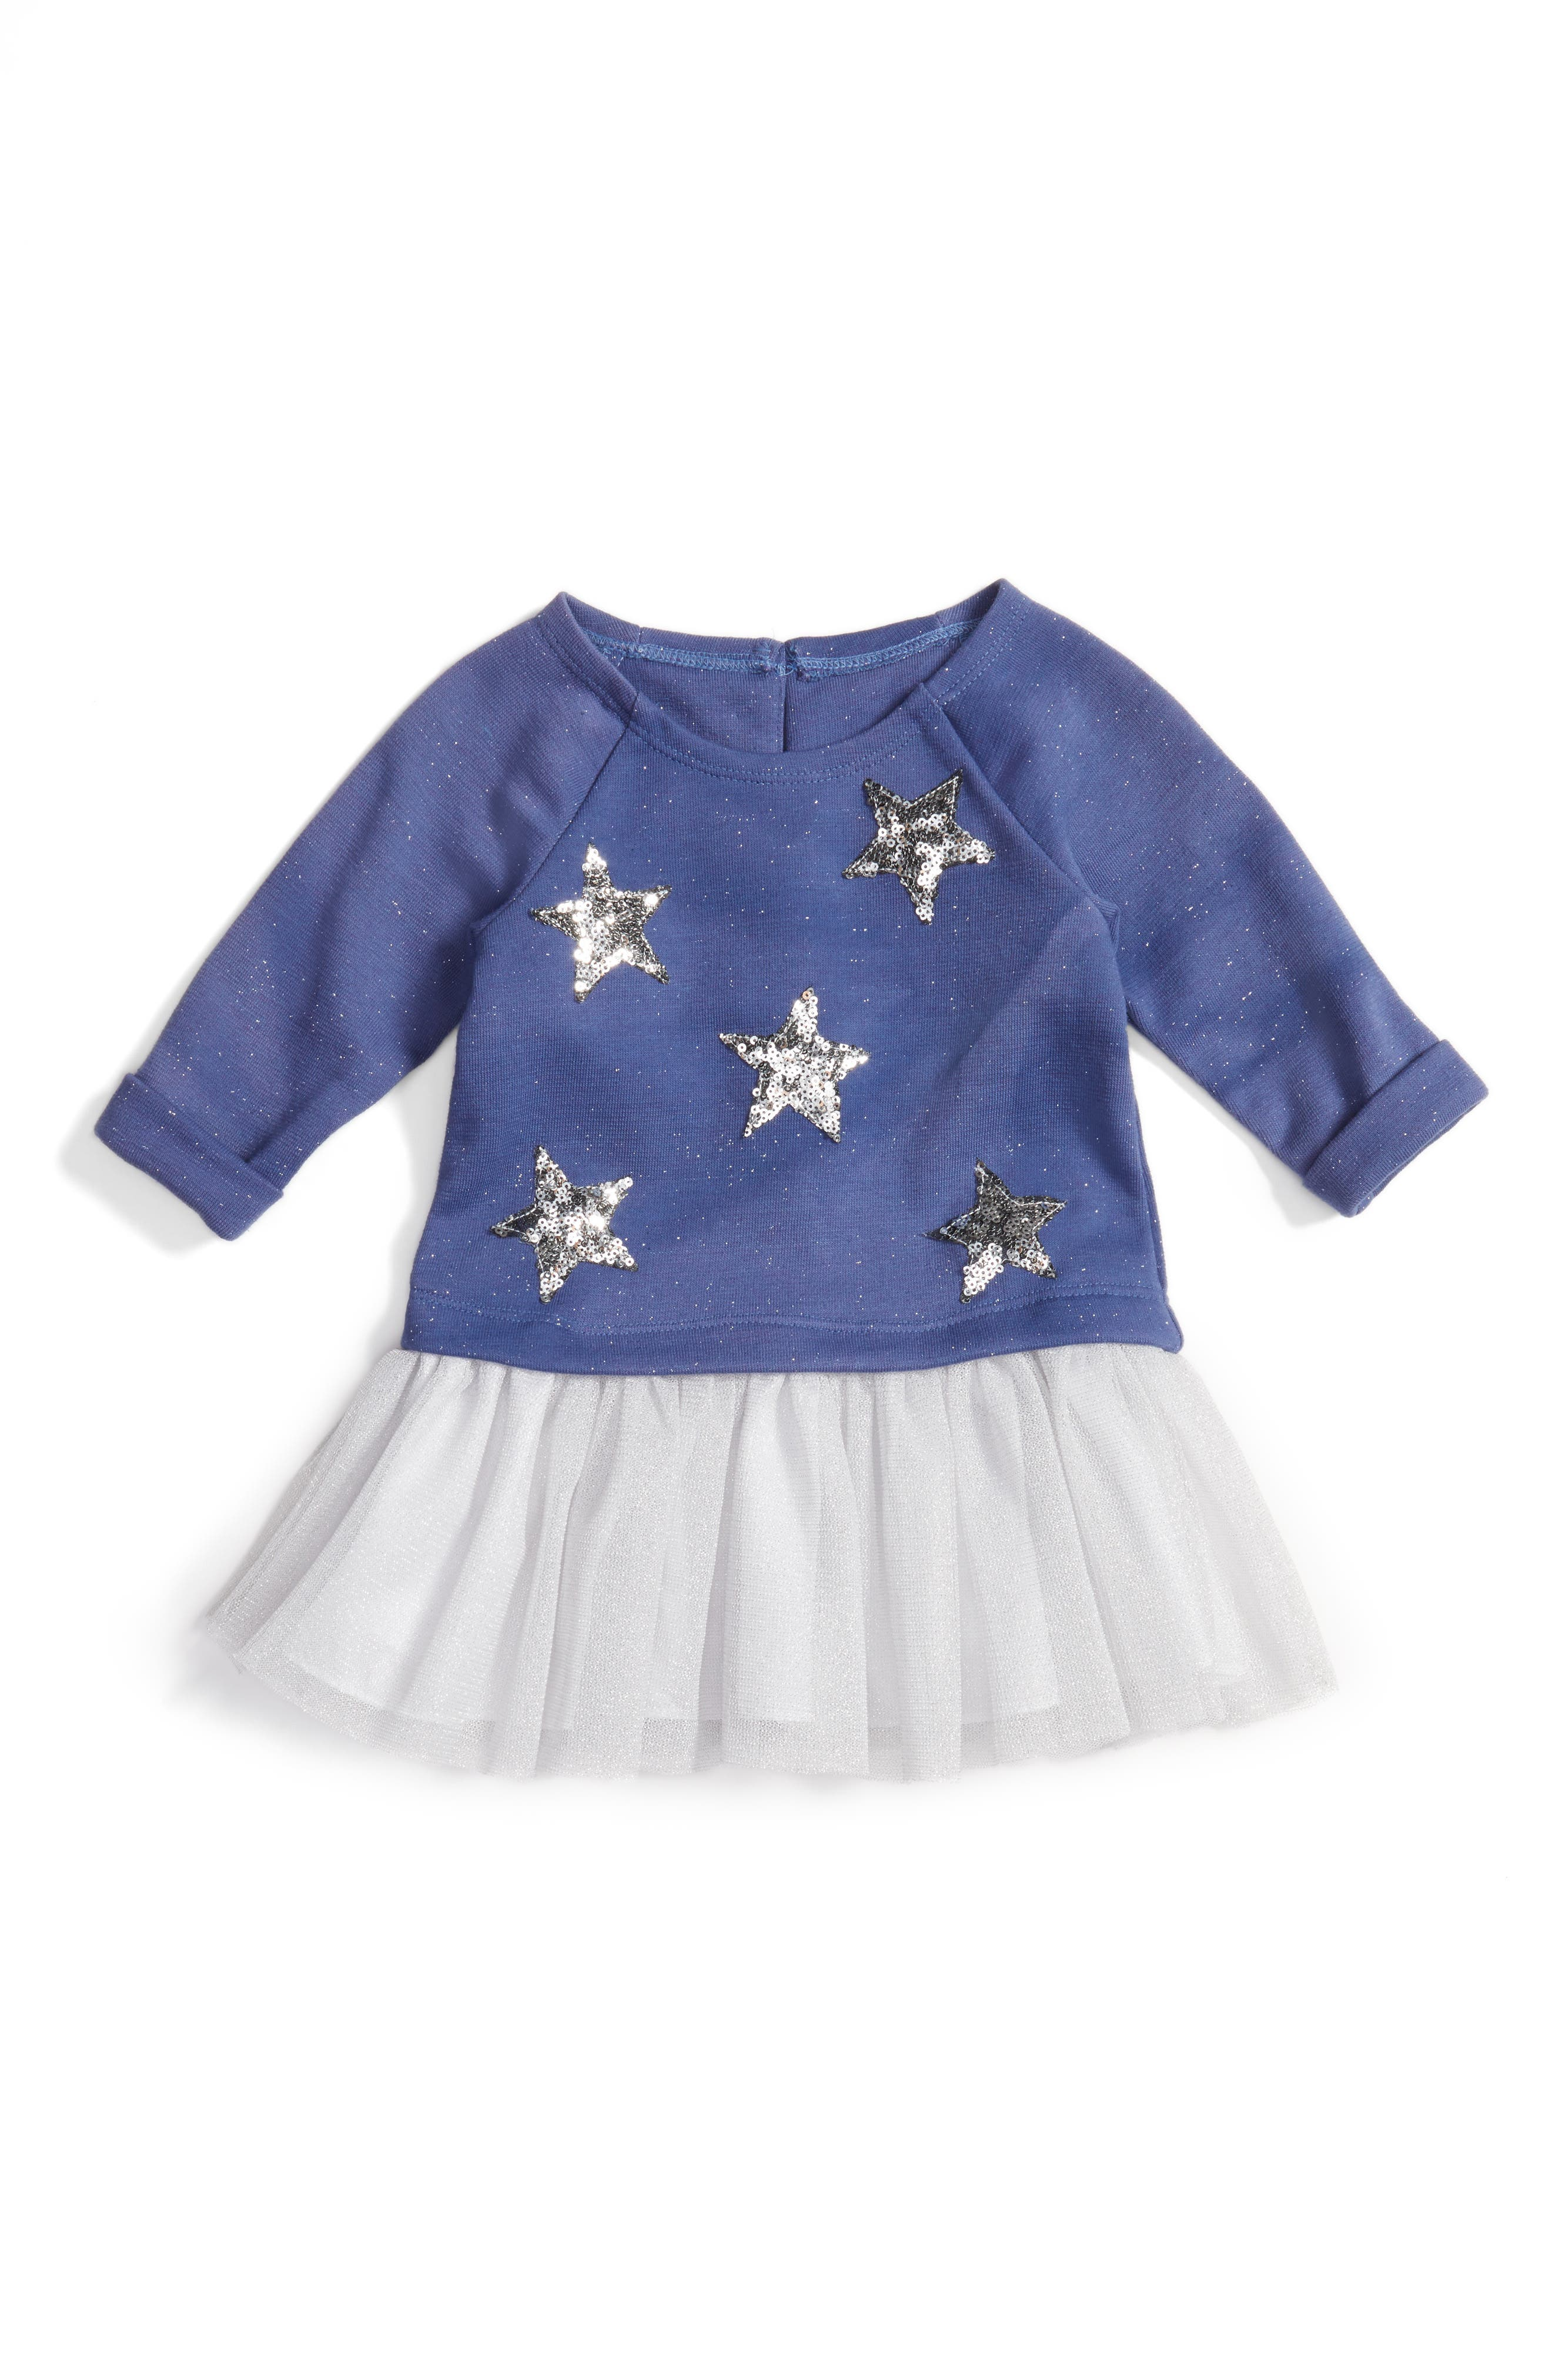 Alternate Image 1 Selected - Pippa & Julie Stars Embellished Dress (Baby Girls)